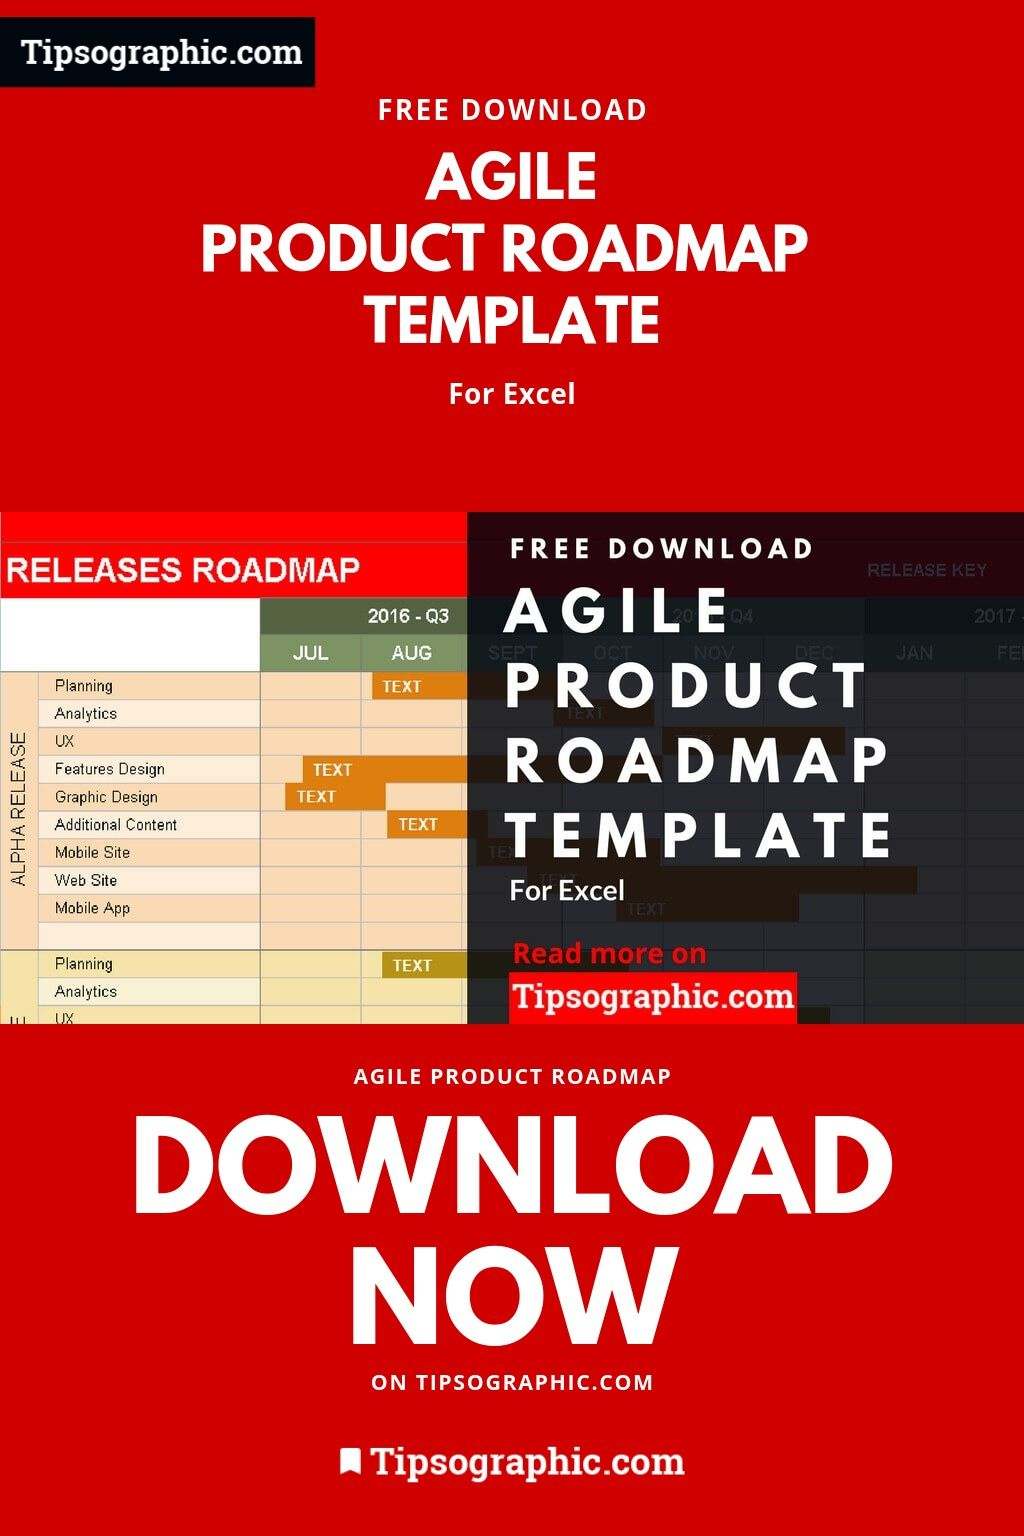 Agile Product Roadmap Template for Excel, Free Download